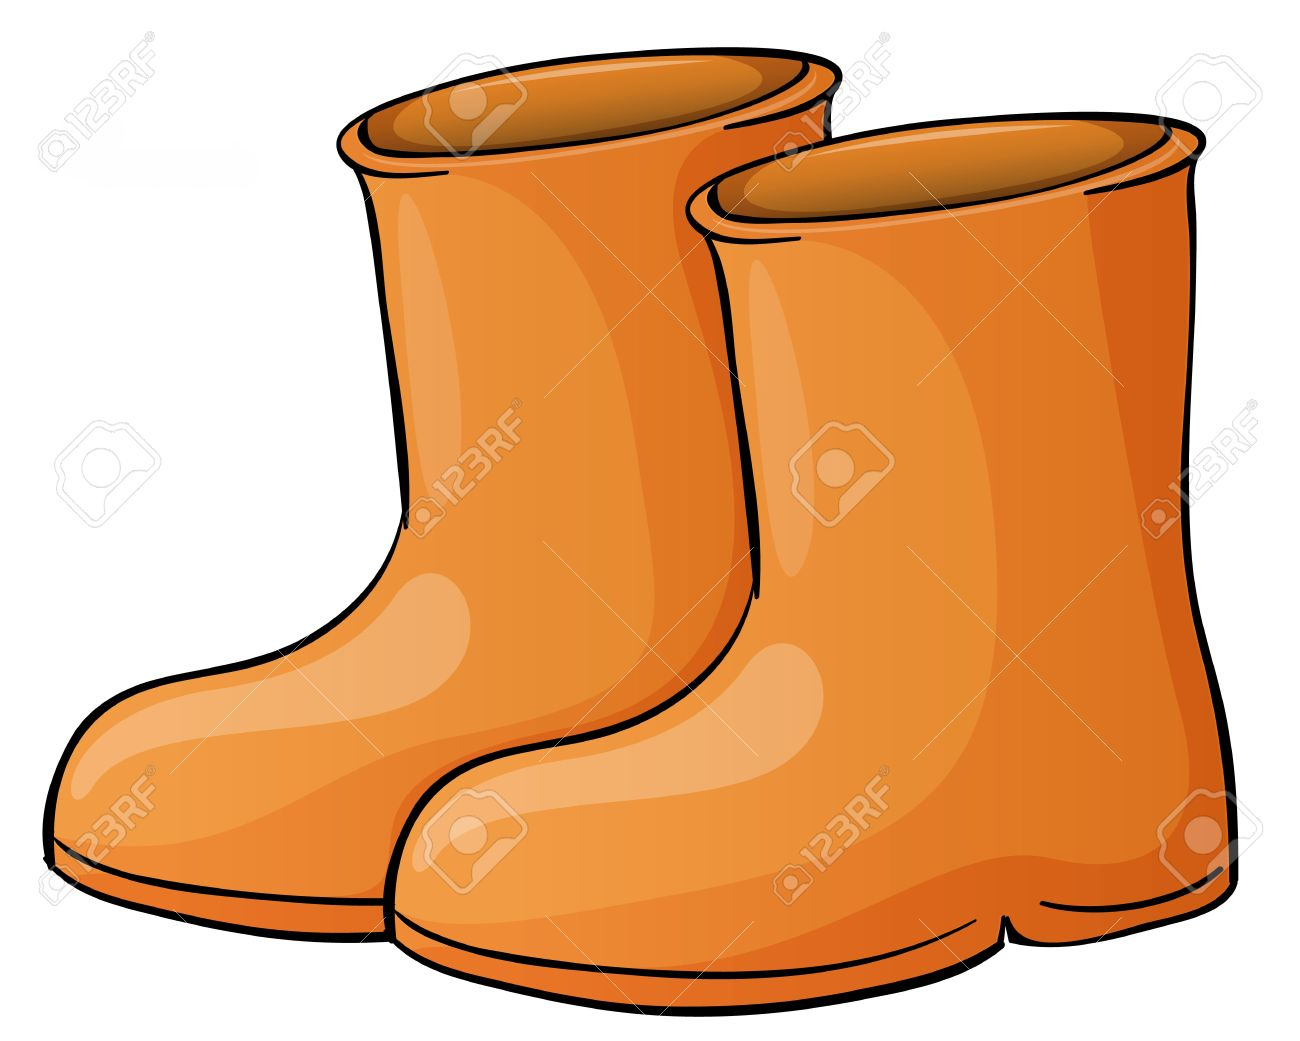 Illustration of a pait of boots - 13988383